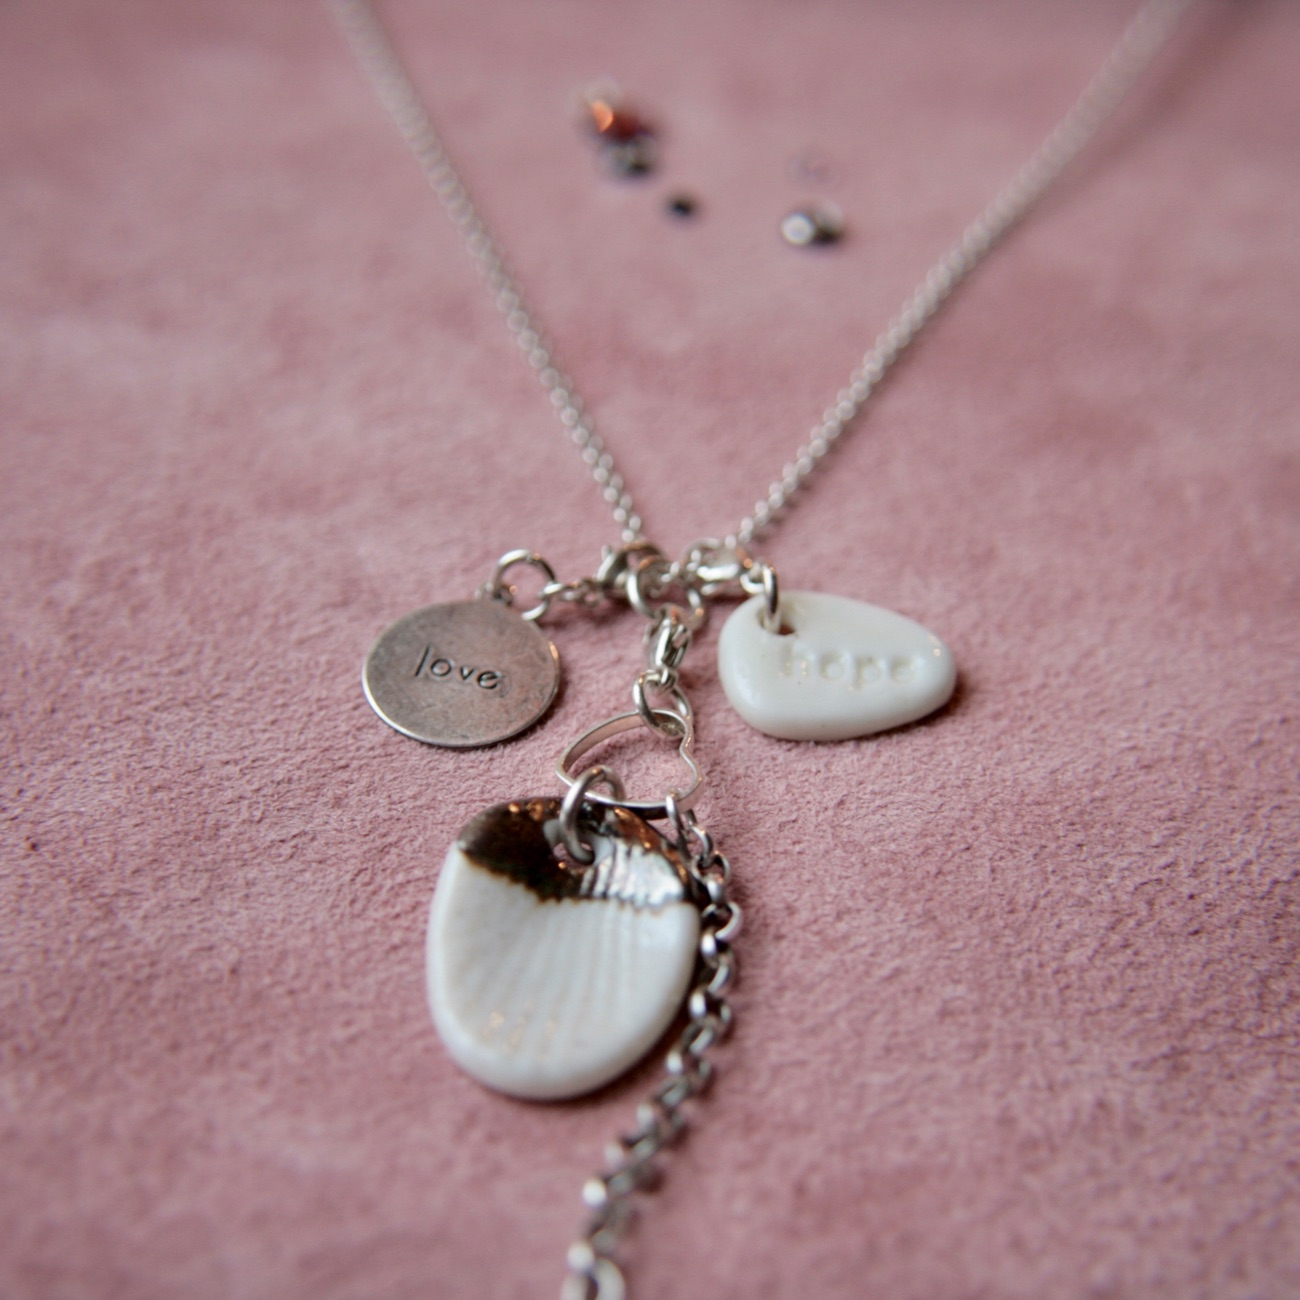 silver necklace with love charms